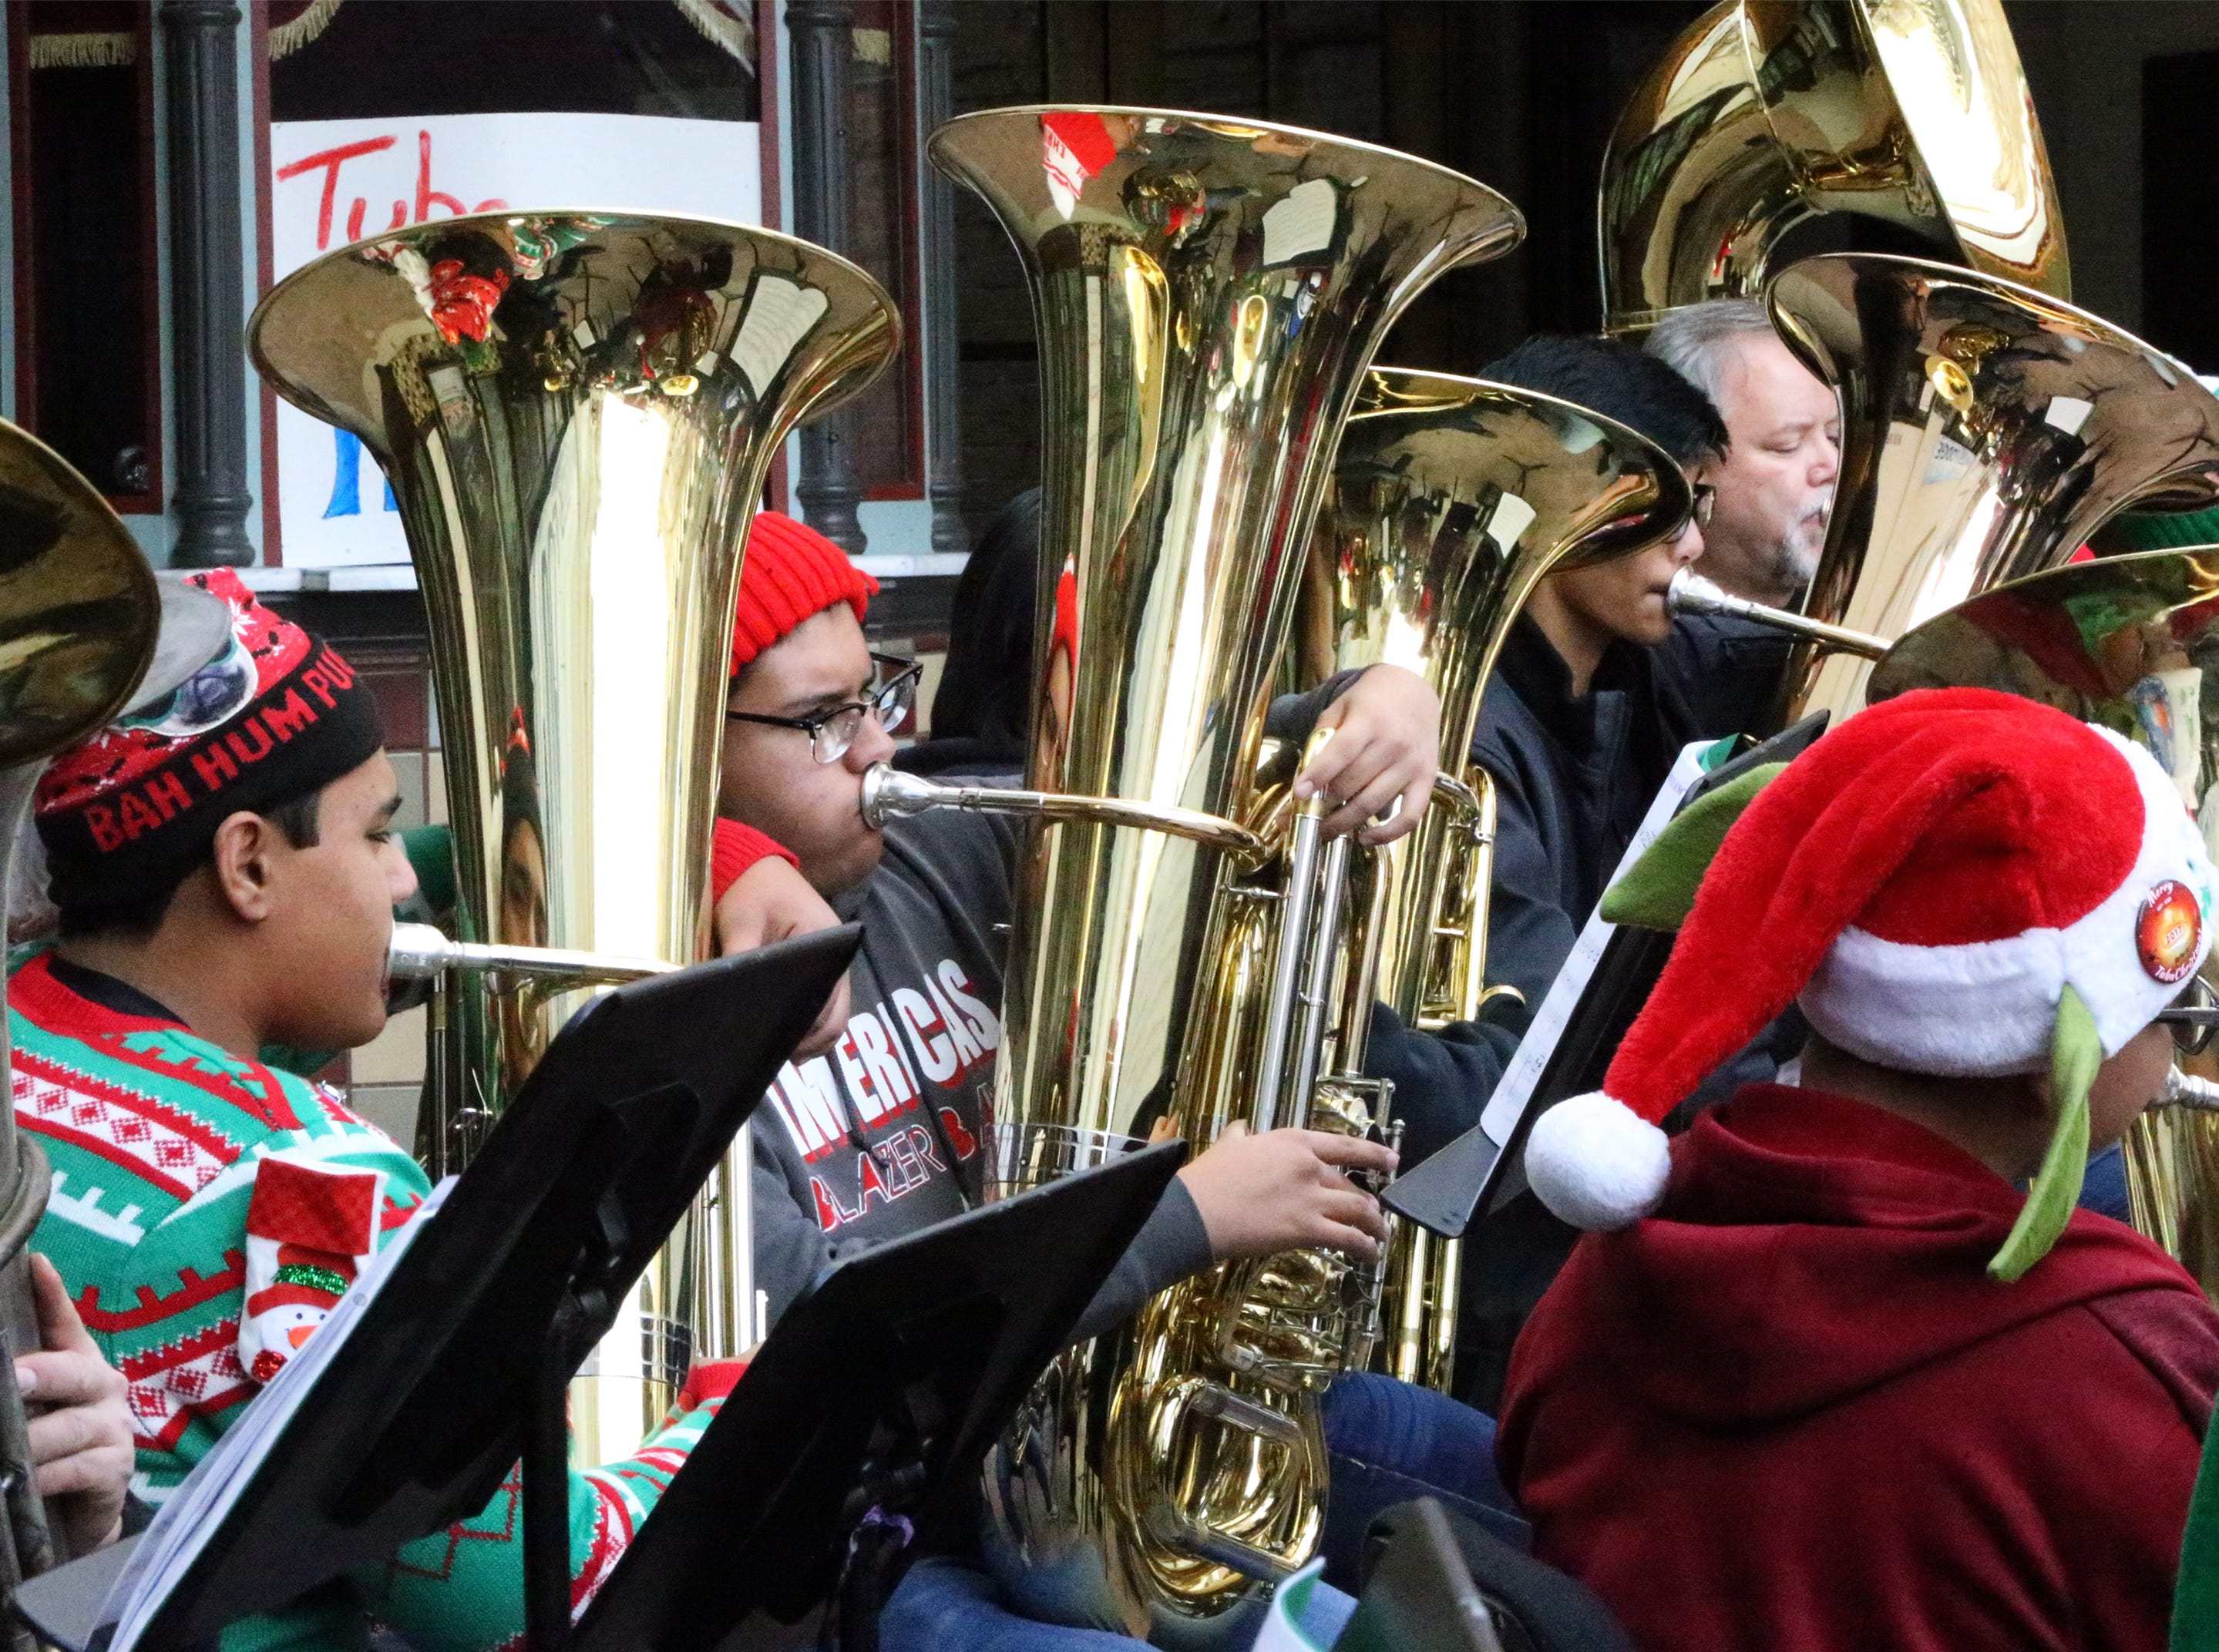 Tuba players play a variety of Christmas favorites during the annual Tuba Christmas concert outside the Plaza Theatre in downtown El Paso Saturday. The event featured just over 40 tuba and baritone horn players who got together, practiced for about an hour before giving the free performance.